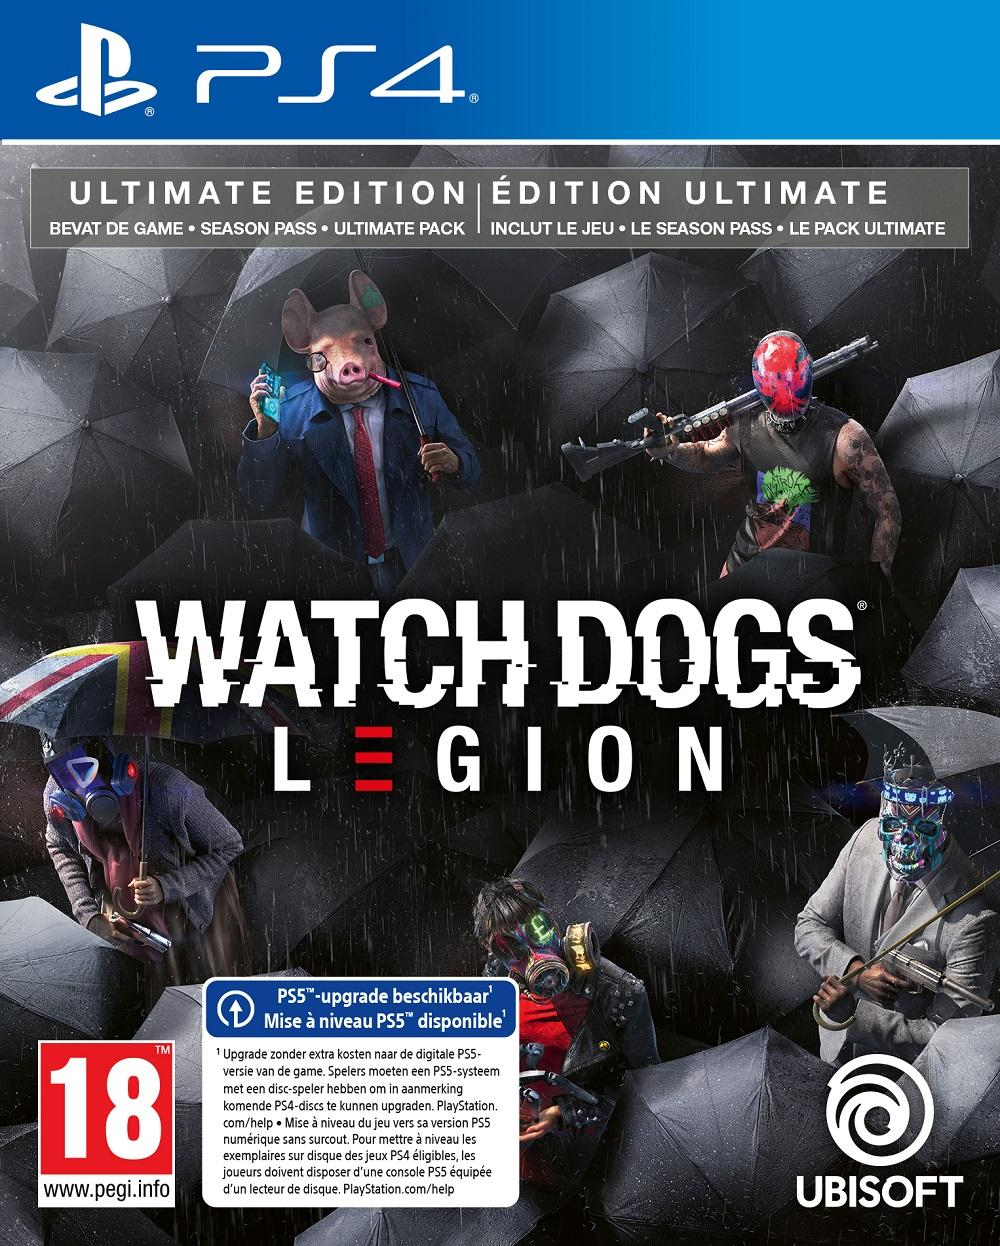 Watch Dogs Legion Ultimate Edition  - UPGRADE PS5 free_1